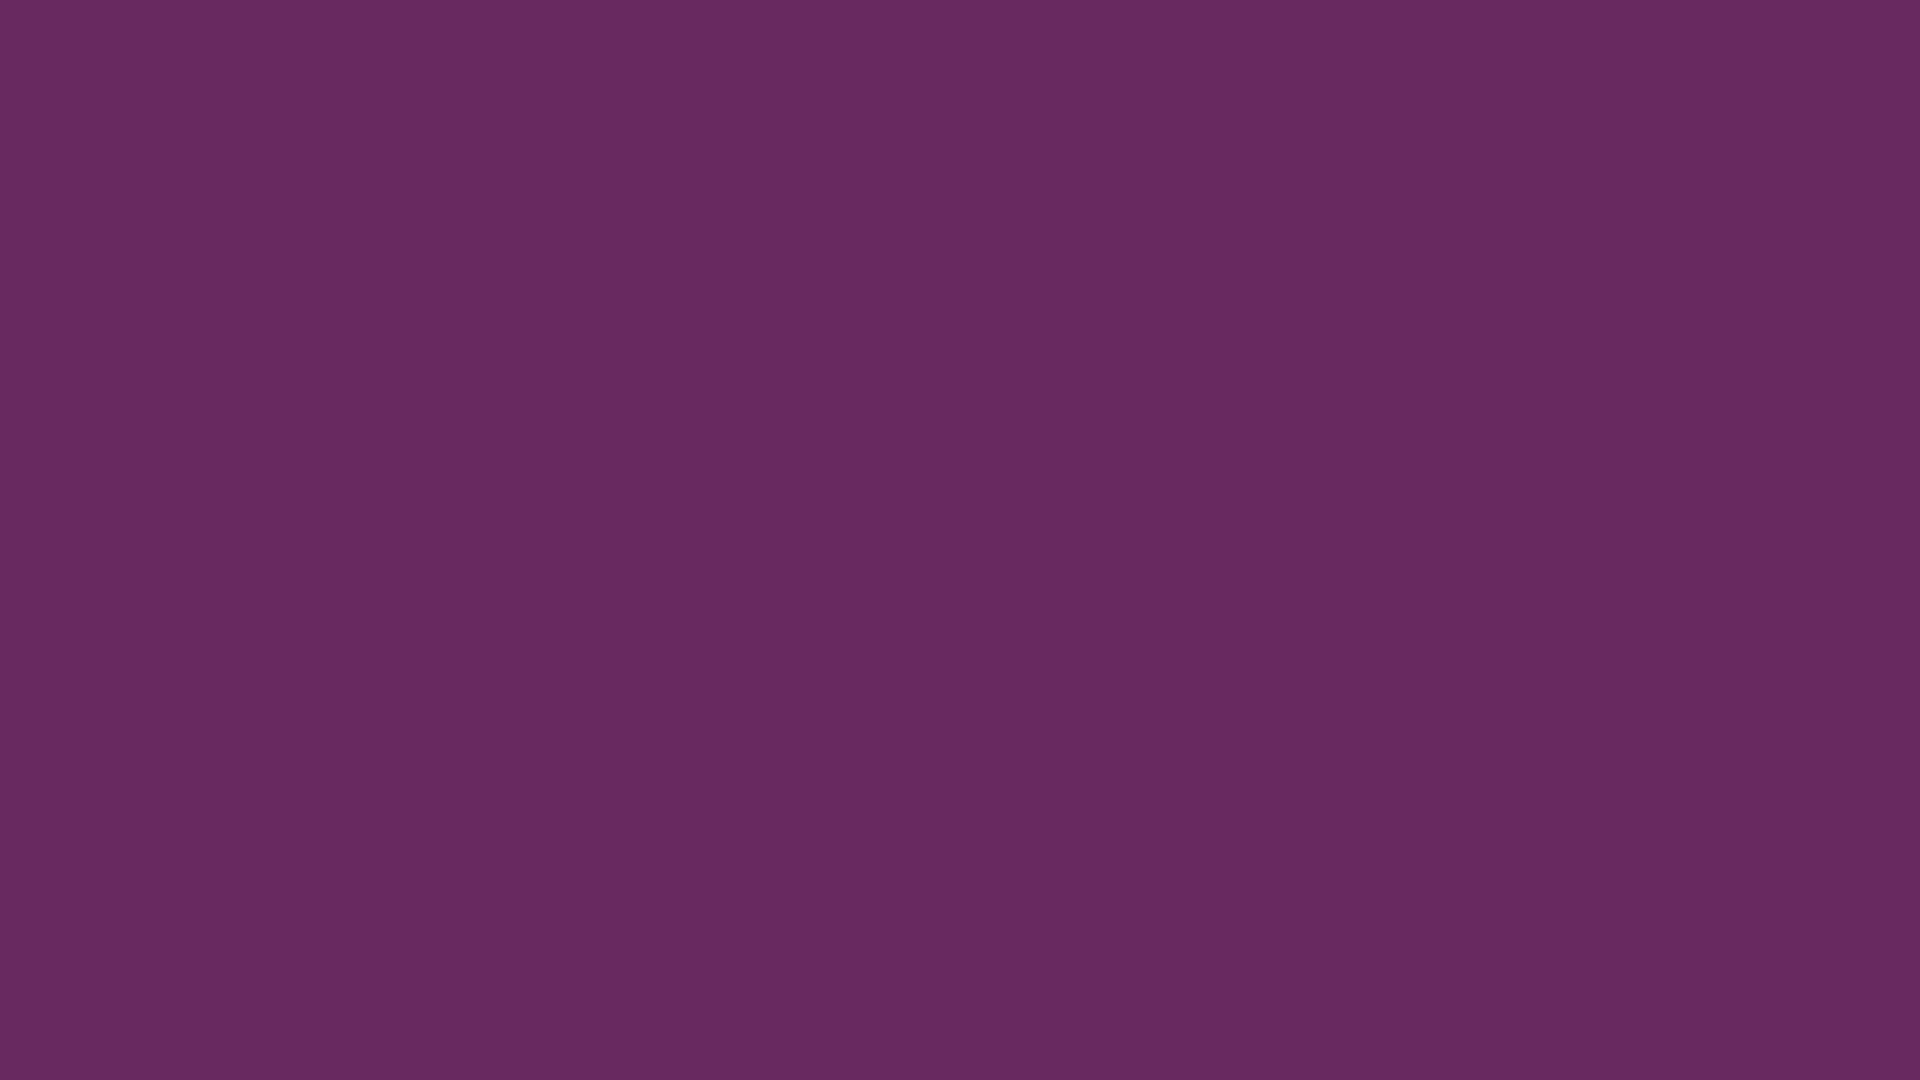 1920x1080 Palatinate Purple Solid Color Background